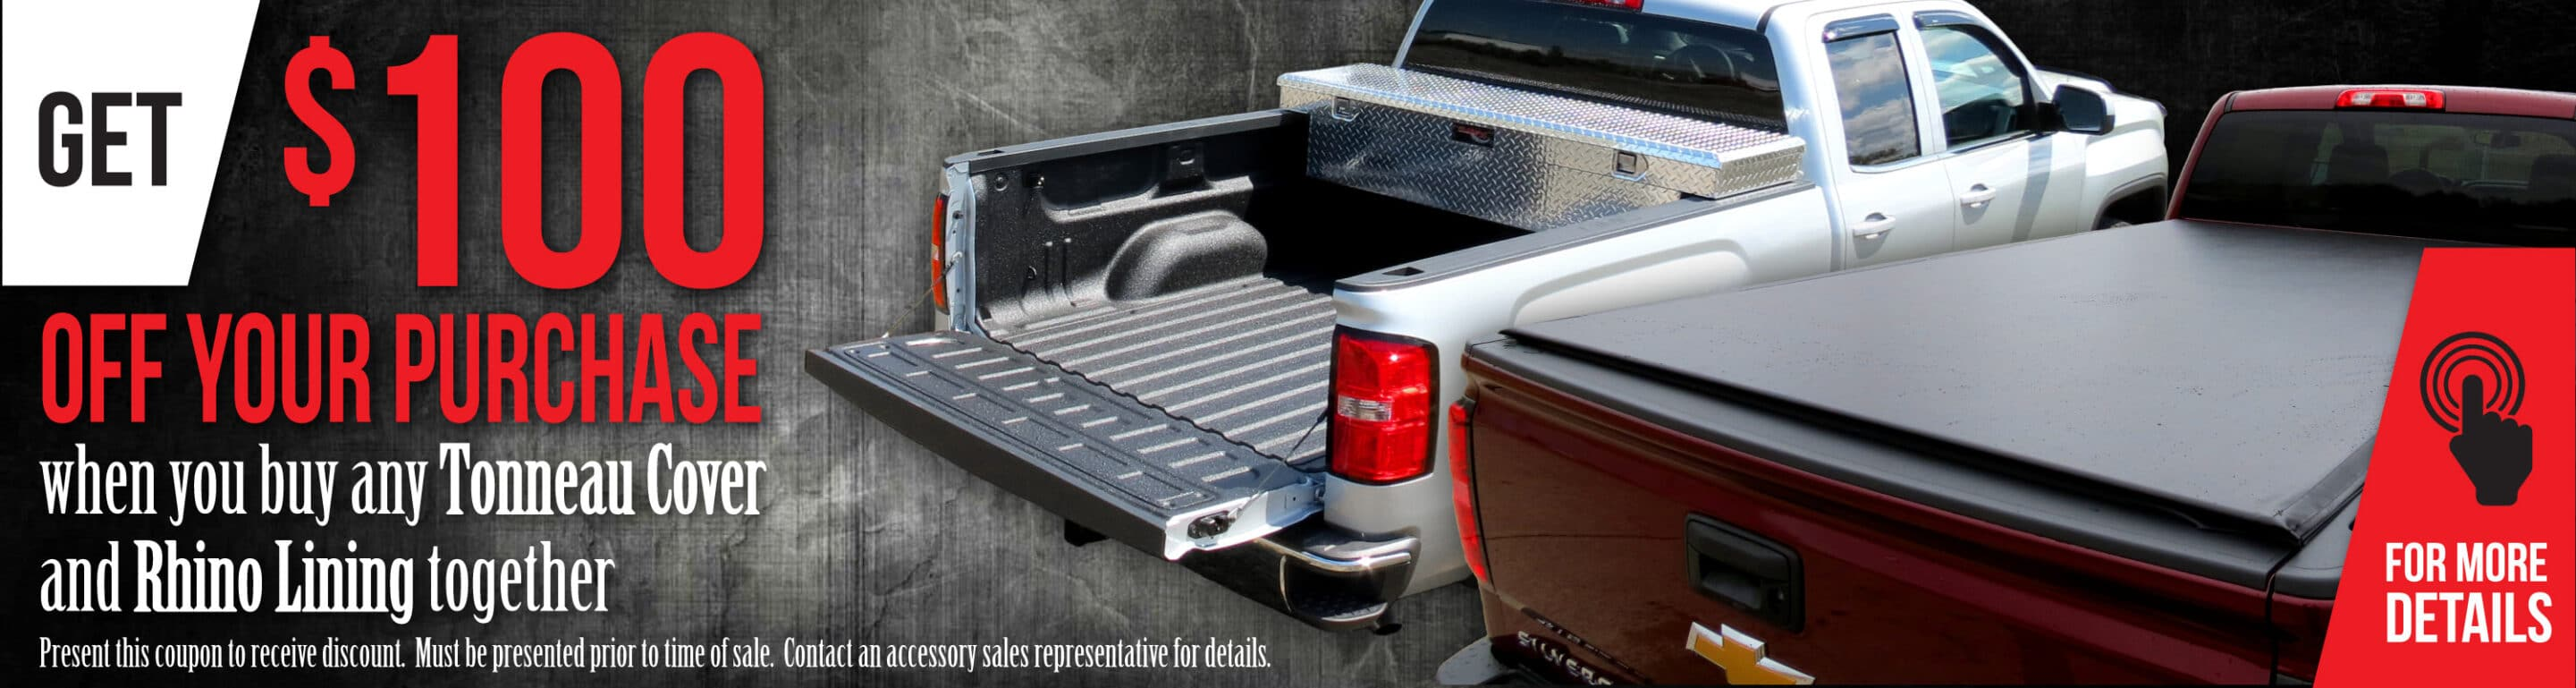 Get $100 Off your Purchase when you buy a Tonneau Cover and Rhino Lining together